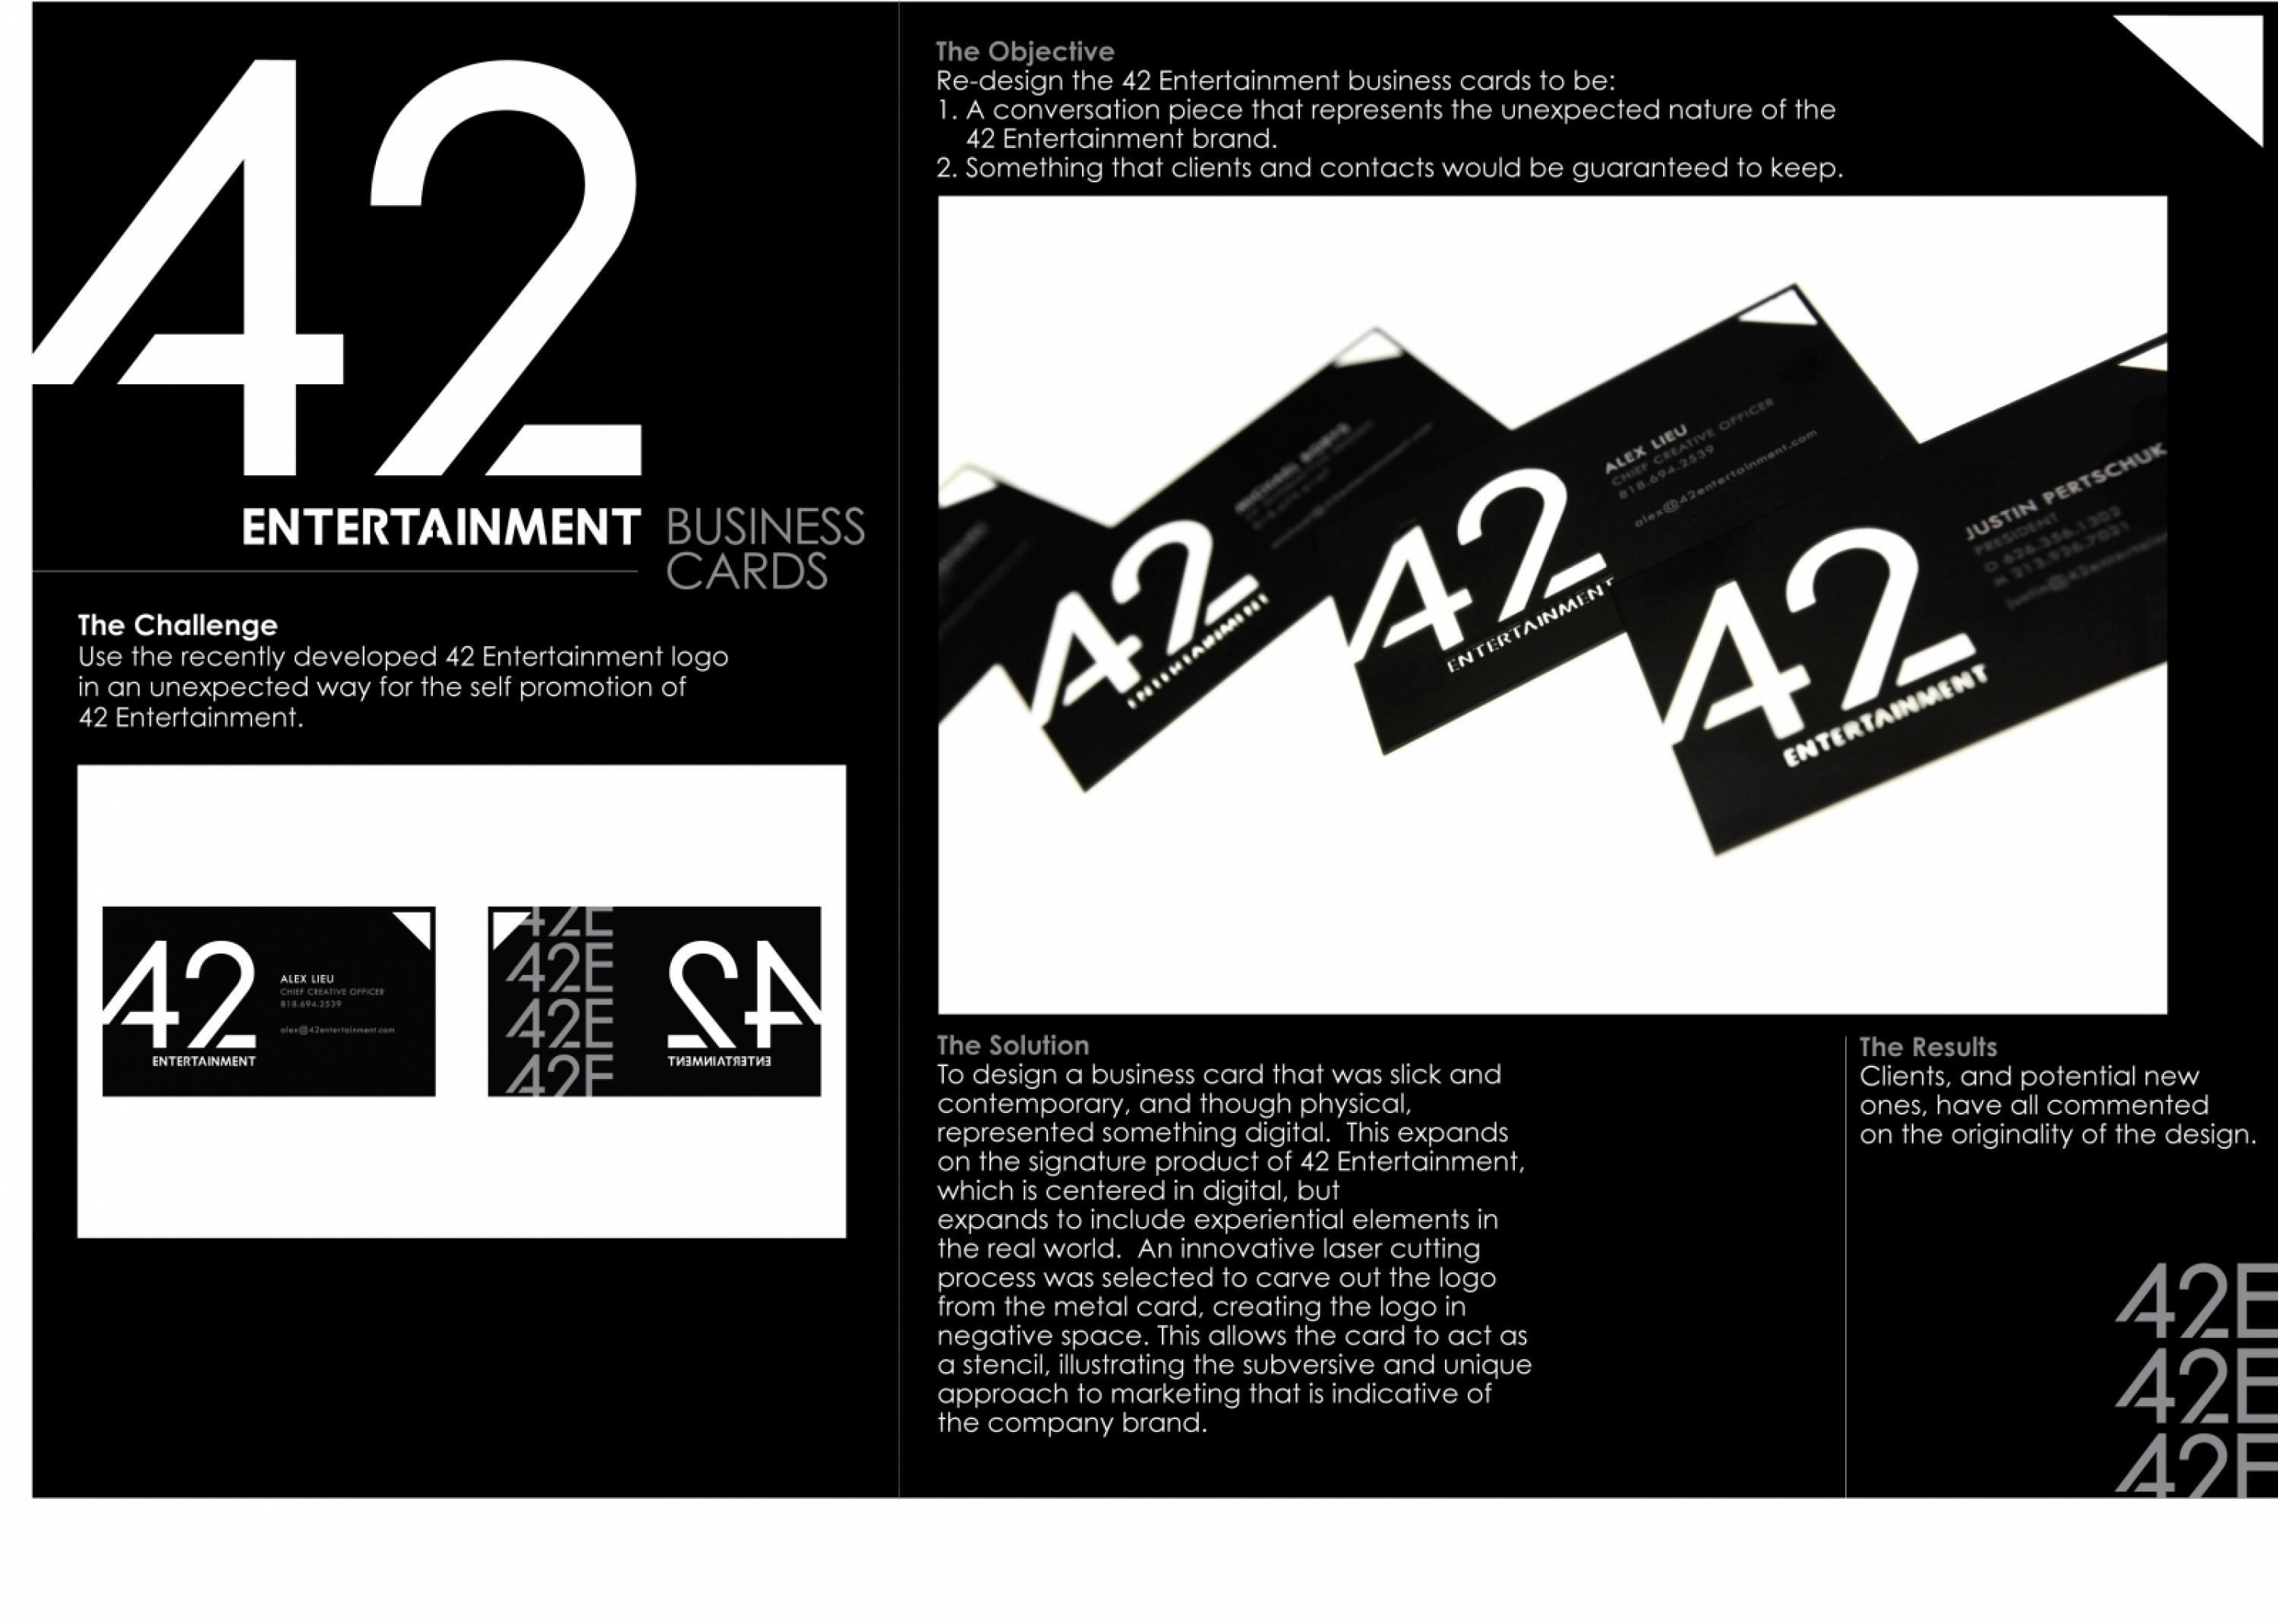 42 Entertainment: 42 Entertainment Business Cards - Adeevee